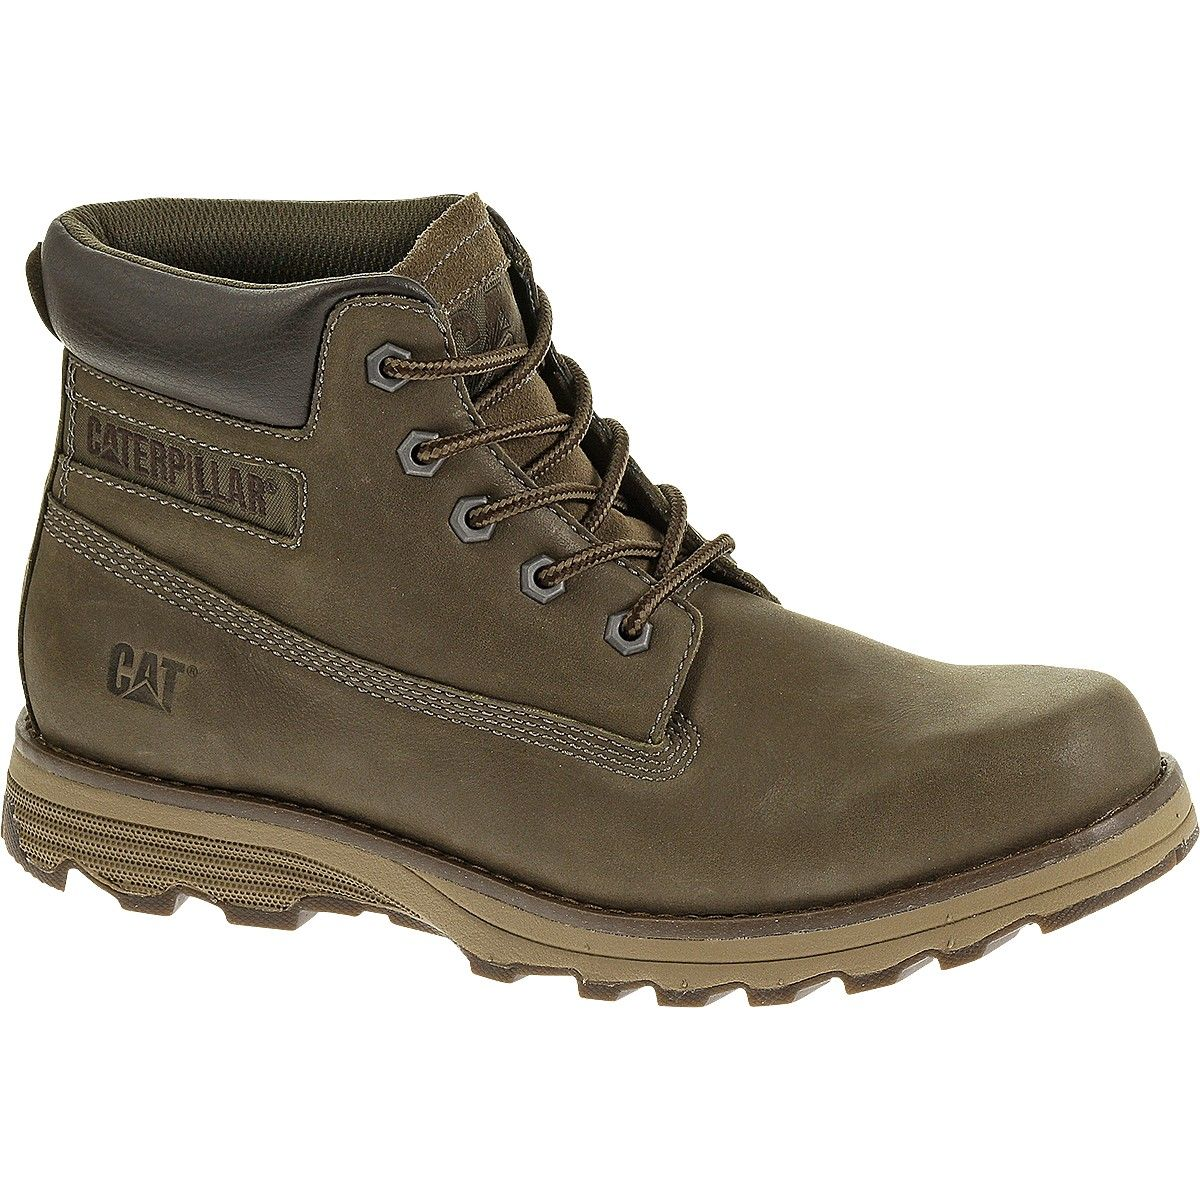 Cat Footwear Colorado Boot Review | Boots, Best shoes for